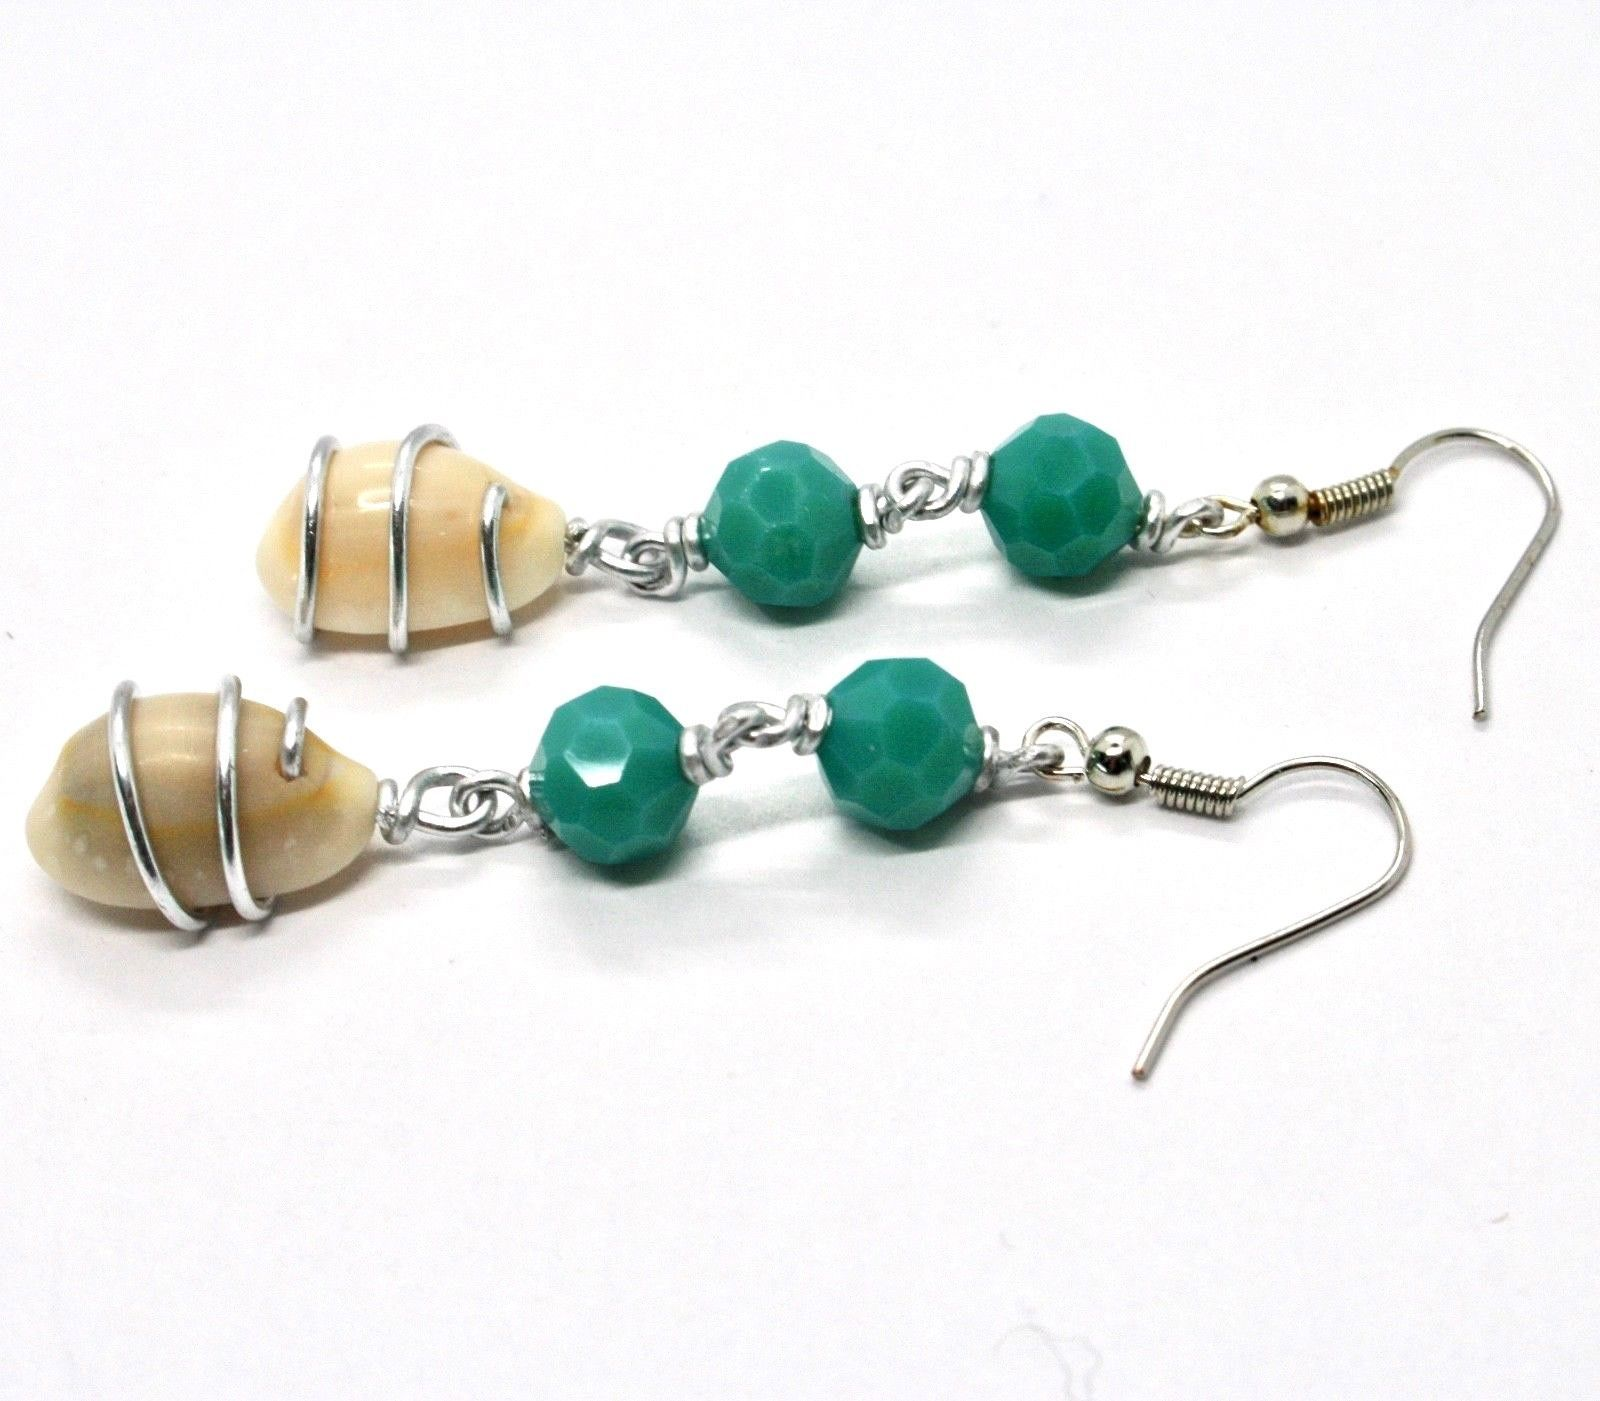 EARRINGS THE ALUMINIUM LONG 6 CM WITH SEASHELLS AND CRYSTAL GREEN WATER